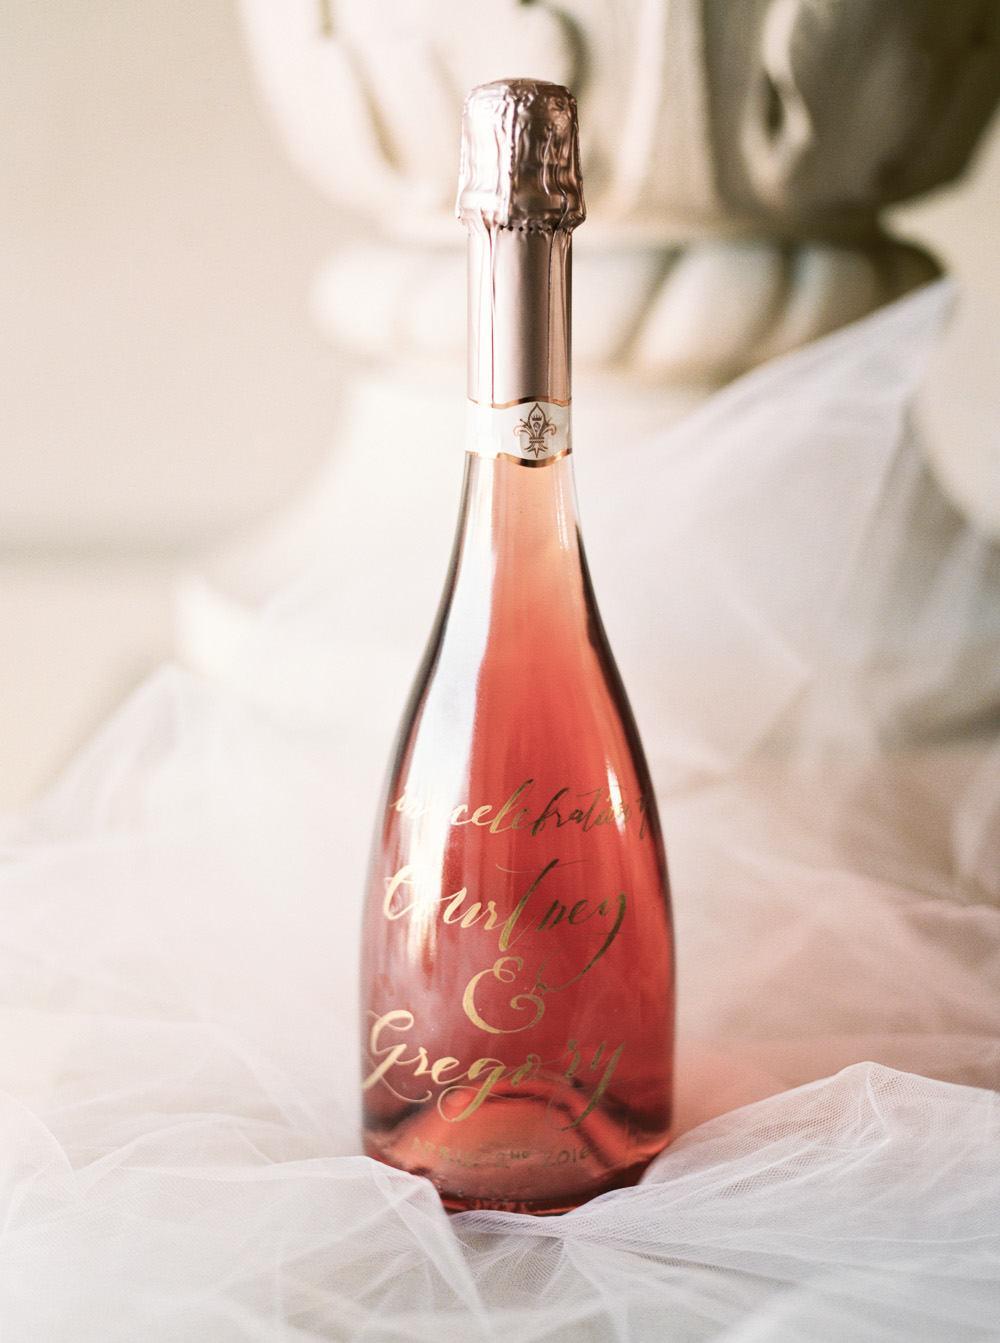 Gold Calligraphy on Rose Champagne Bottle  | by Lara Lam photography